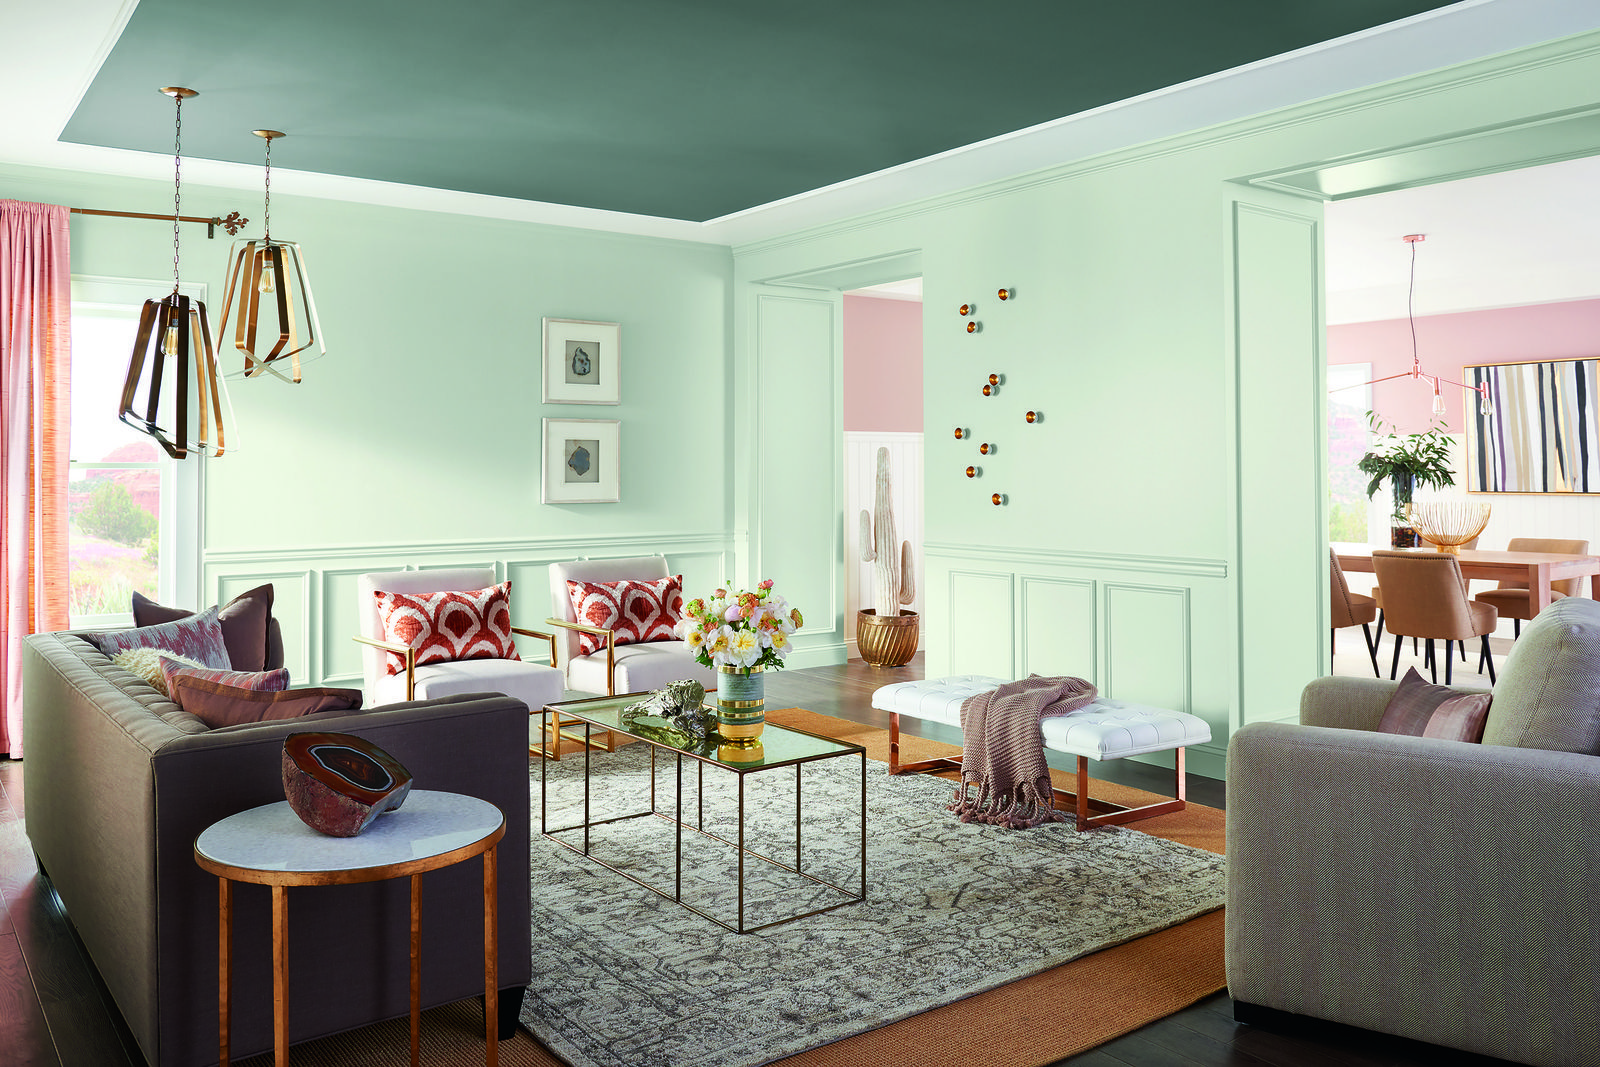 These are the color trends you need to know escaping home